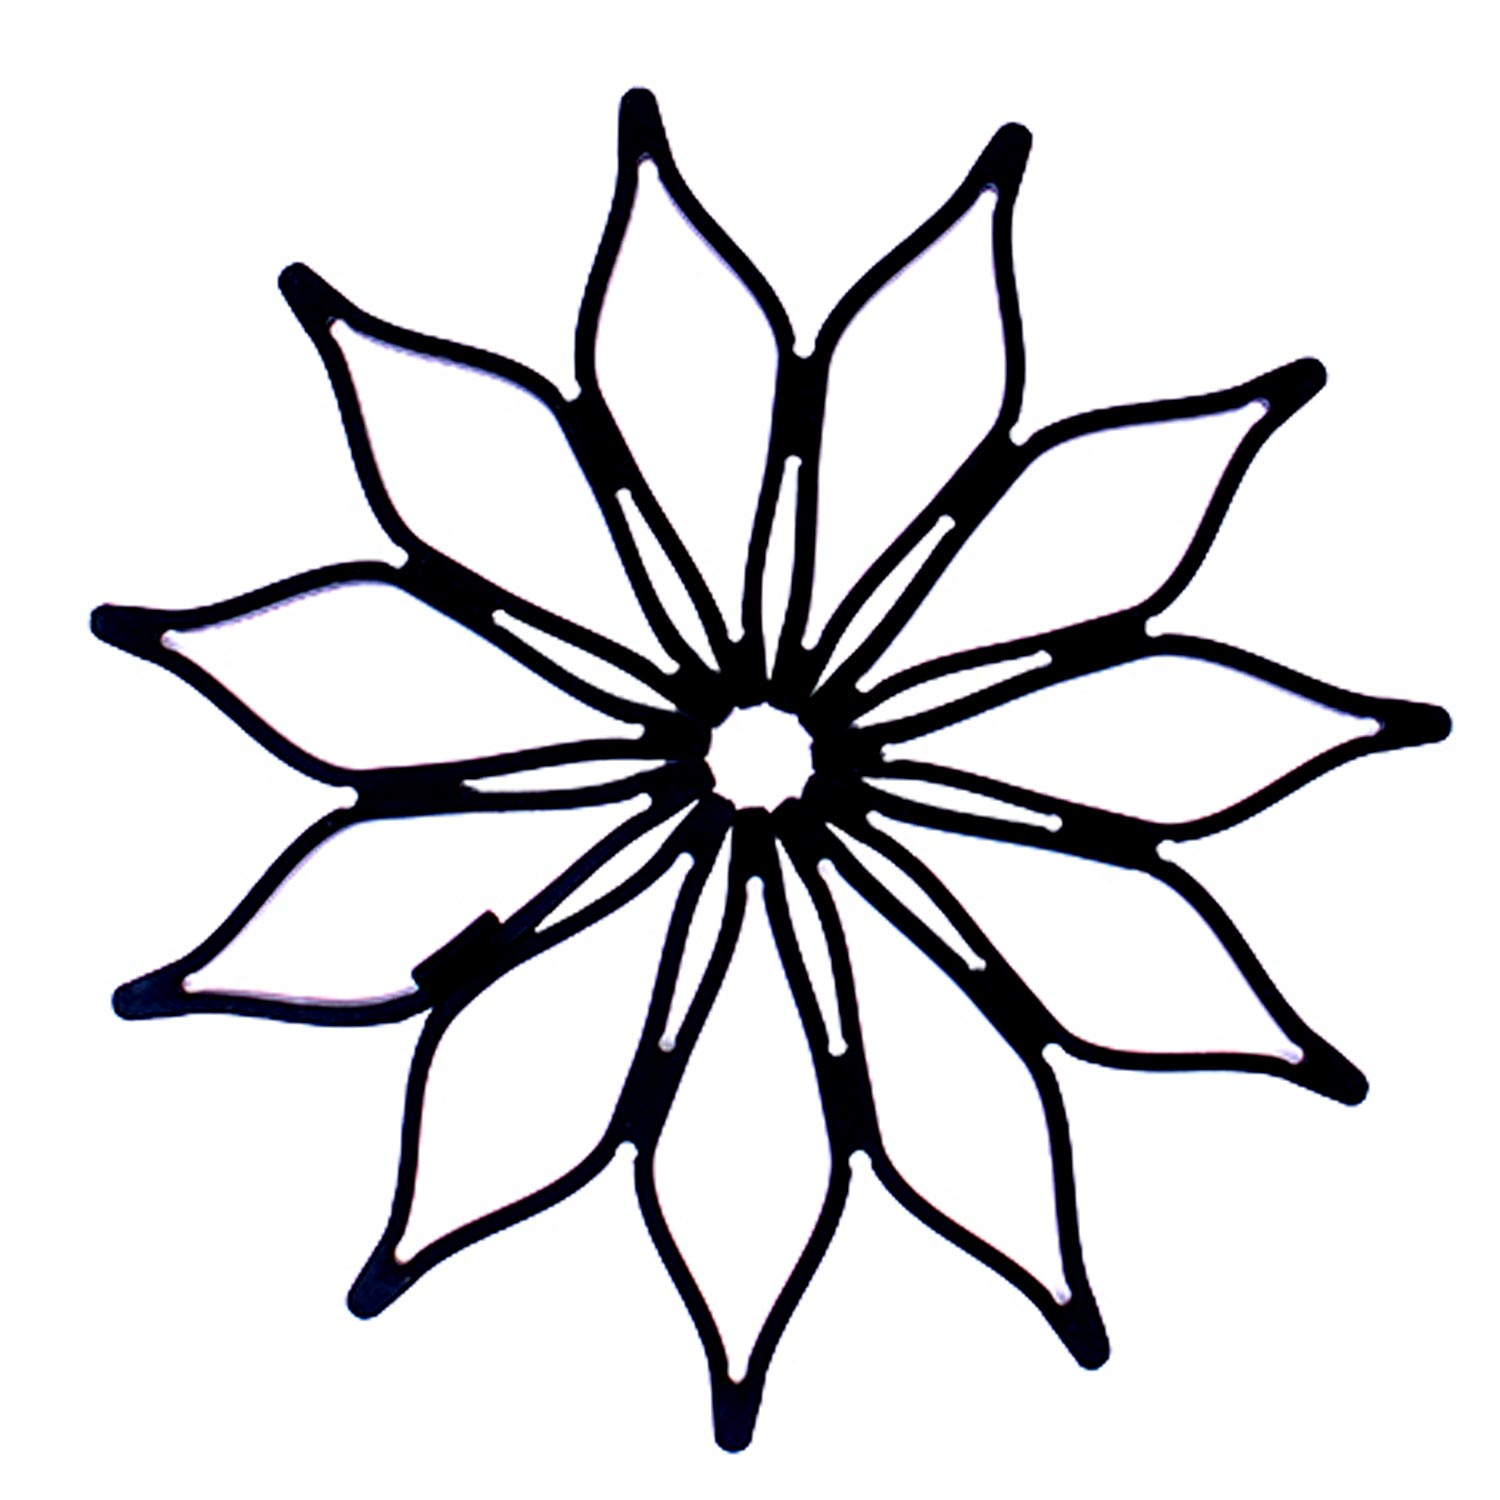 Blossom Mini Multi-Purpose Expanding Flower Silicone Trivet Hot Pad Coaster, Heat-Safe Scratch-Free Non-Stick Non-Skid, Black, 5.5-Inches, Set of 2